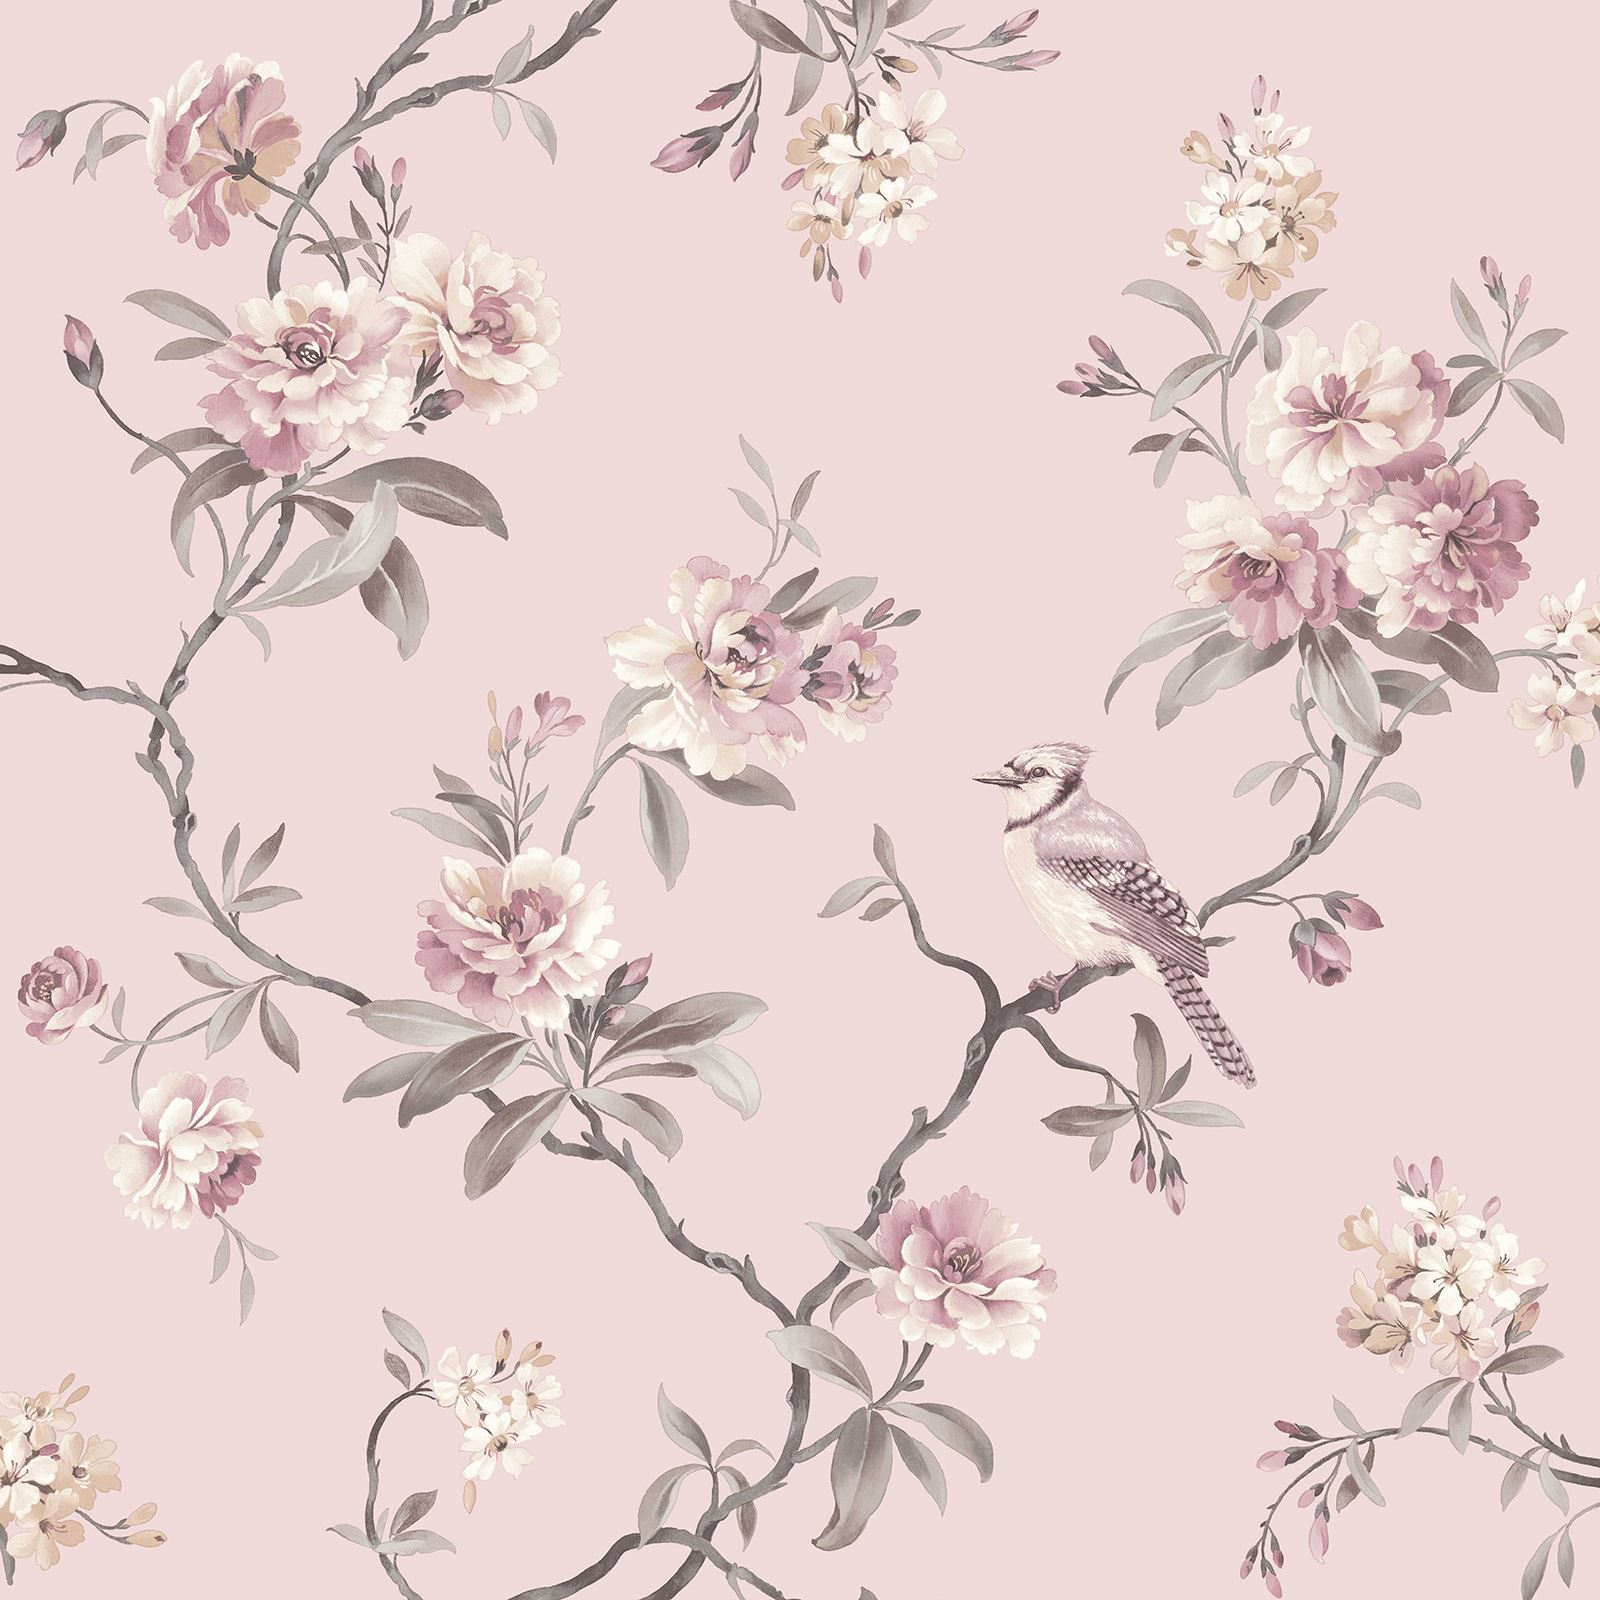 fine decor chic floral chinoiserie bird wallpaper in grey teal pink